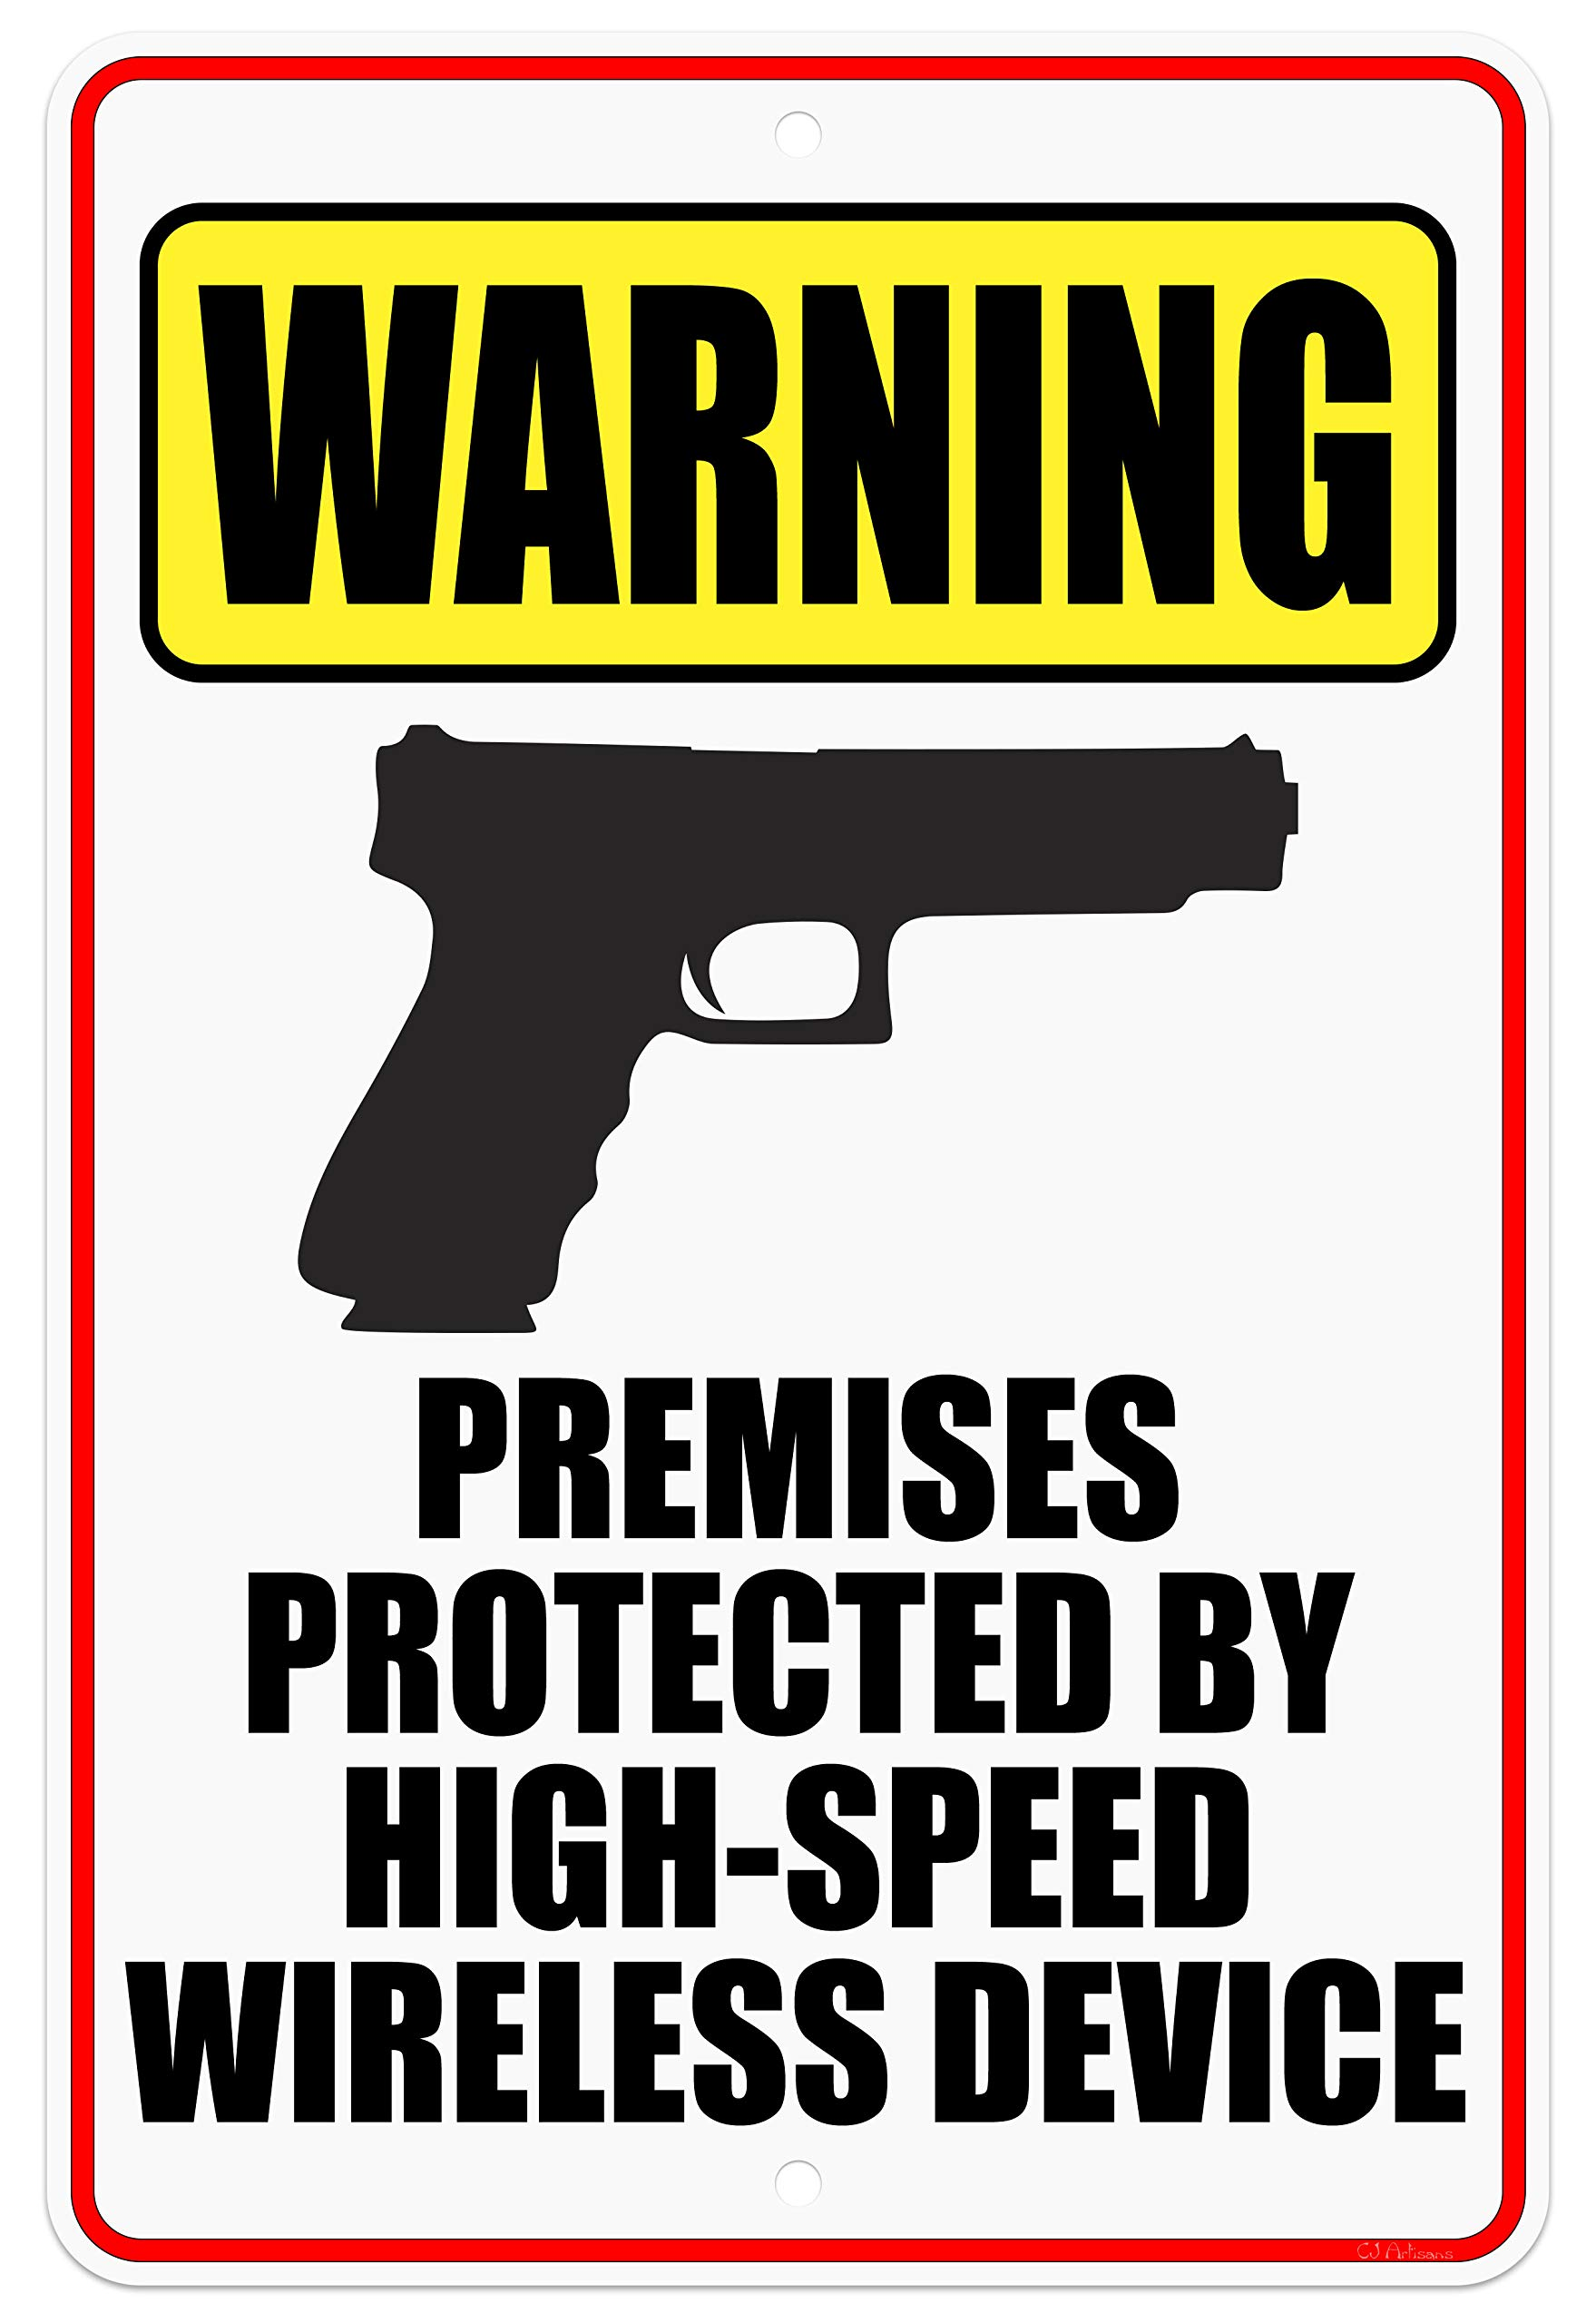 Cj Artisans Premises Protected By High Speed Wireless Device Glock 8x12 Aluminum Warning Sign Glk